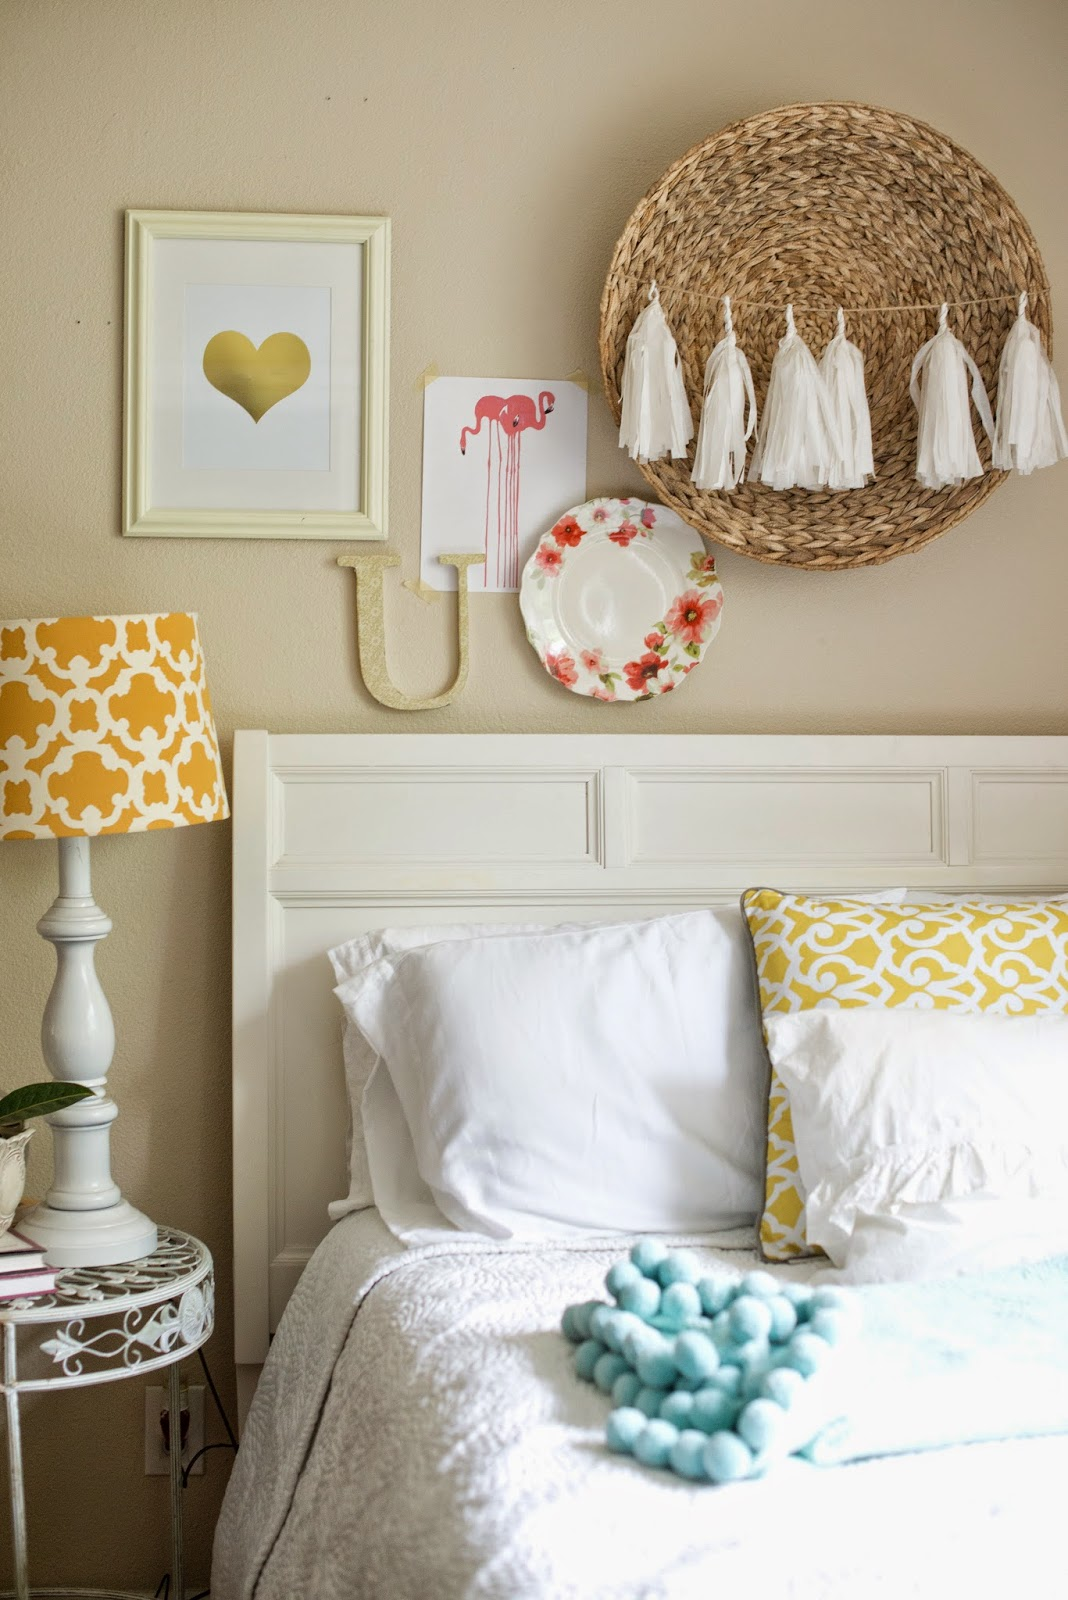 Domestic fashionista updates to our guest bedroom for Fashionista bedroom ideas